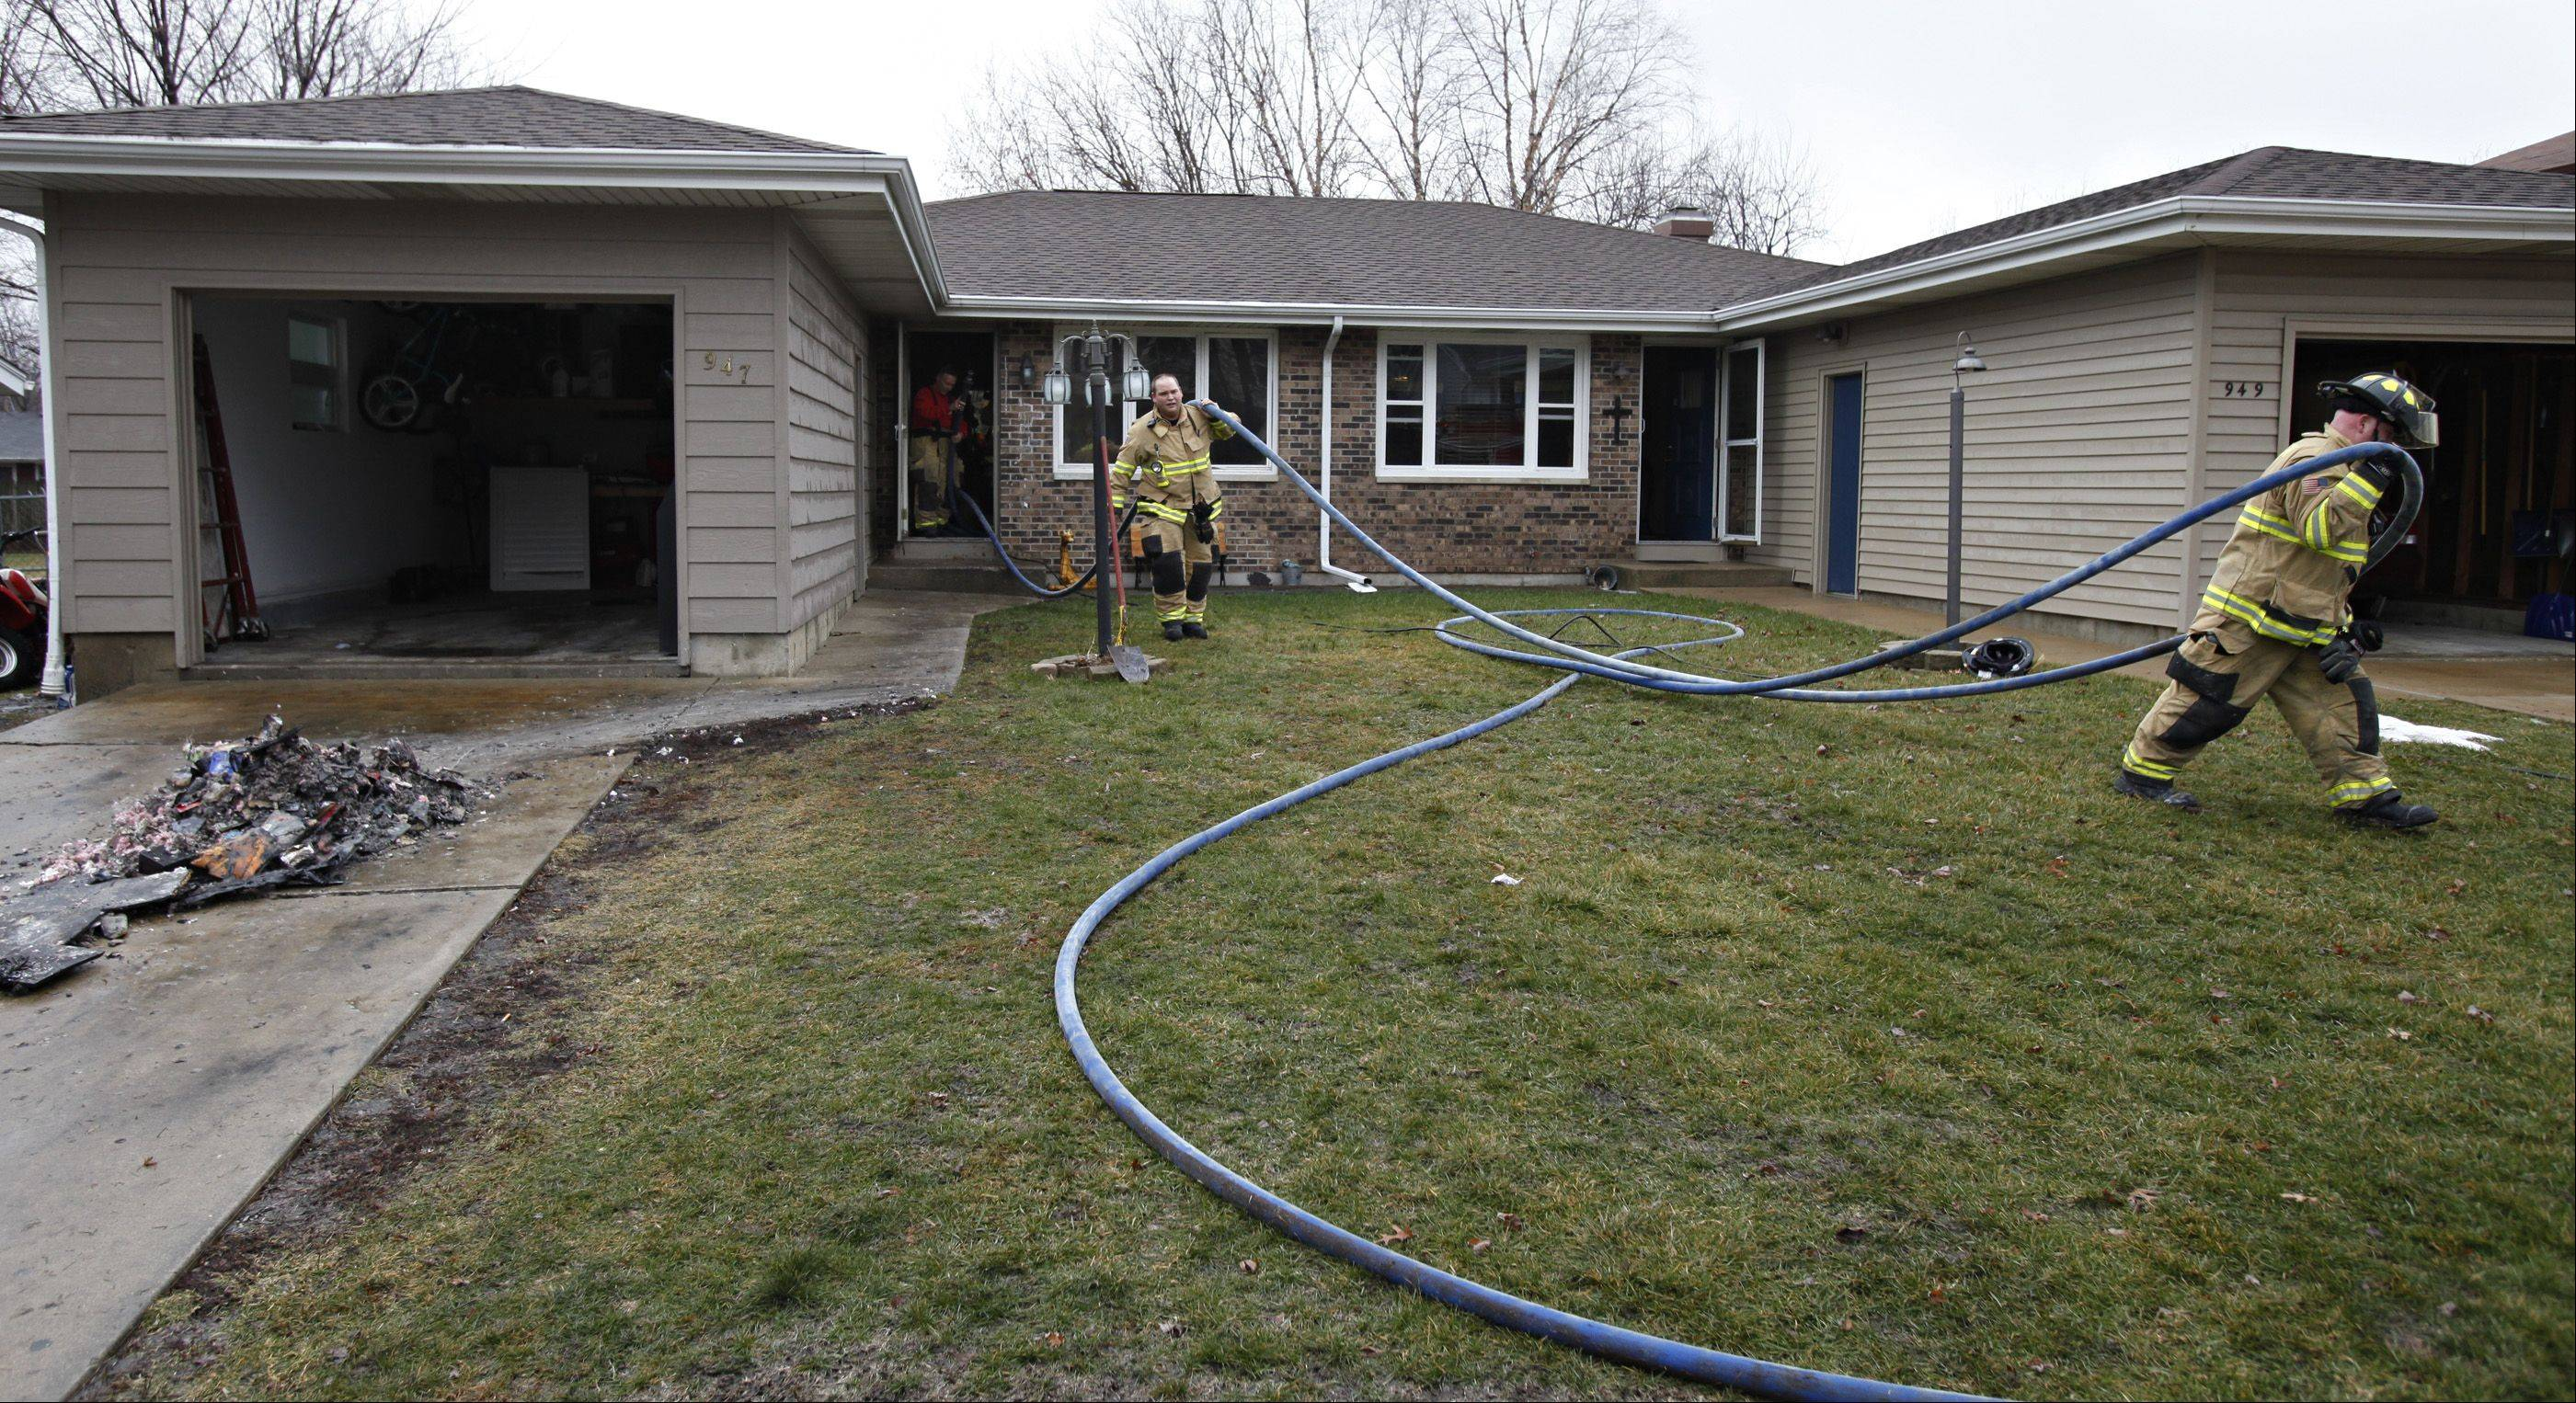 Two South Elgin firefighters bring out a hose line after battling a fire Monday on the 900 block of Kane Street in South Elgin. Firefighters said a dog may have sparked the fire by jumping for a pizza box on a stove, knocking the stove�s burner setting to the �on� position.